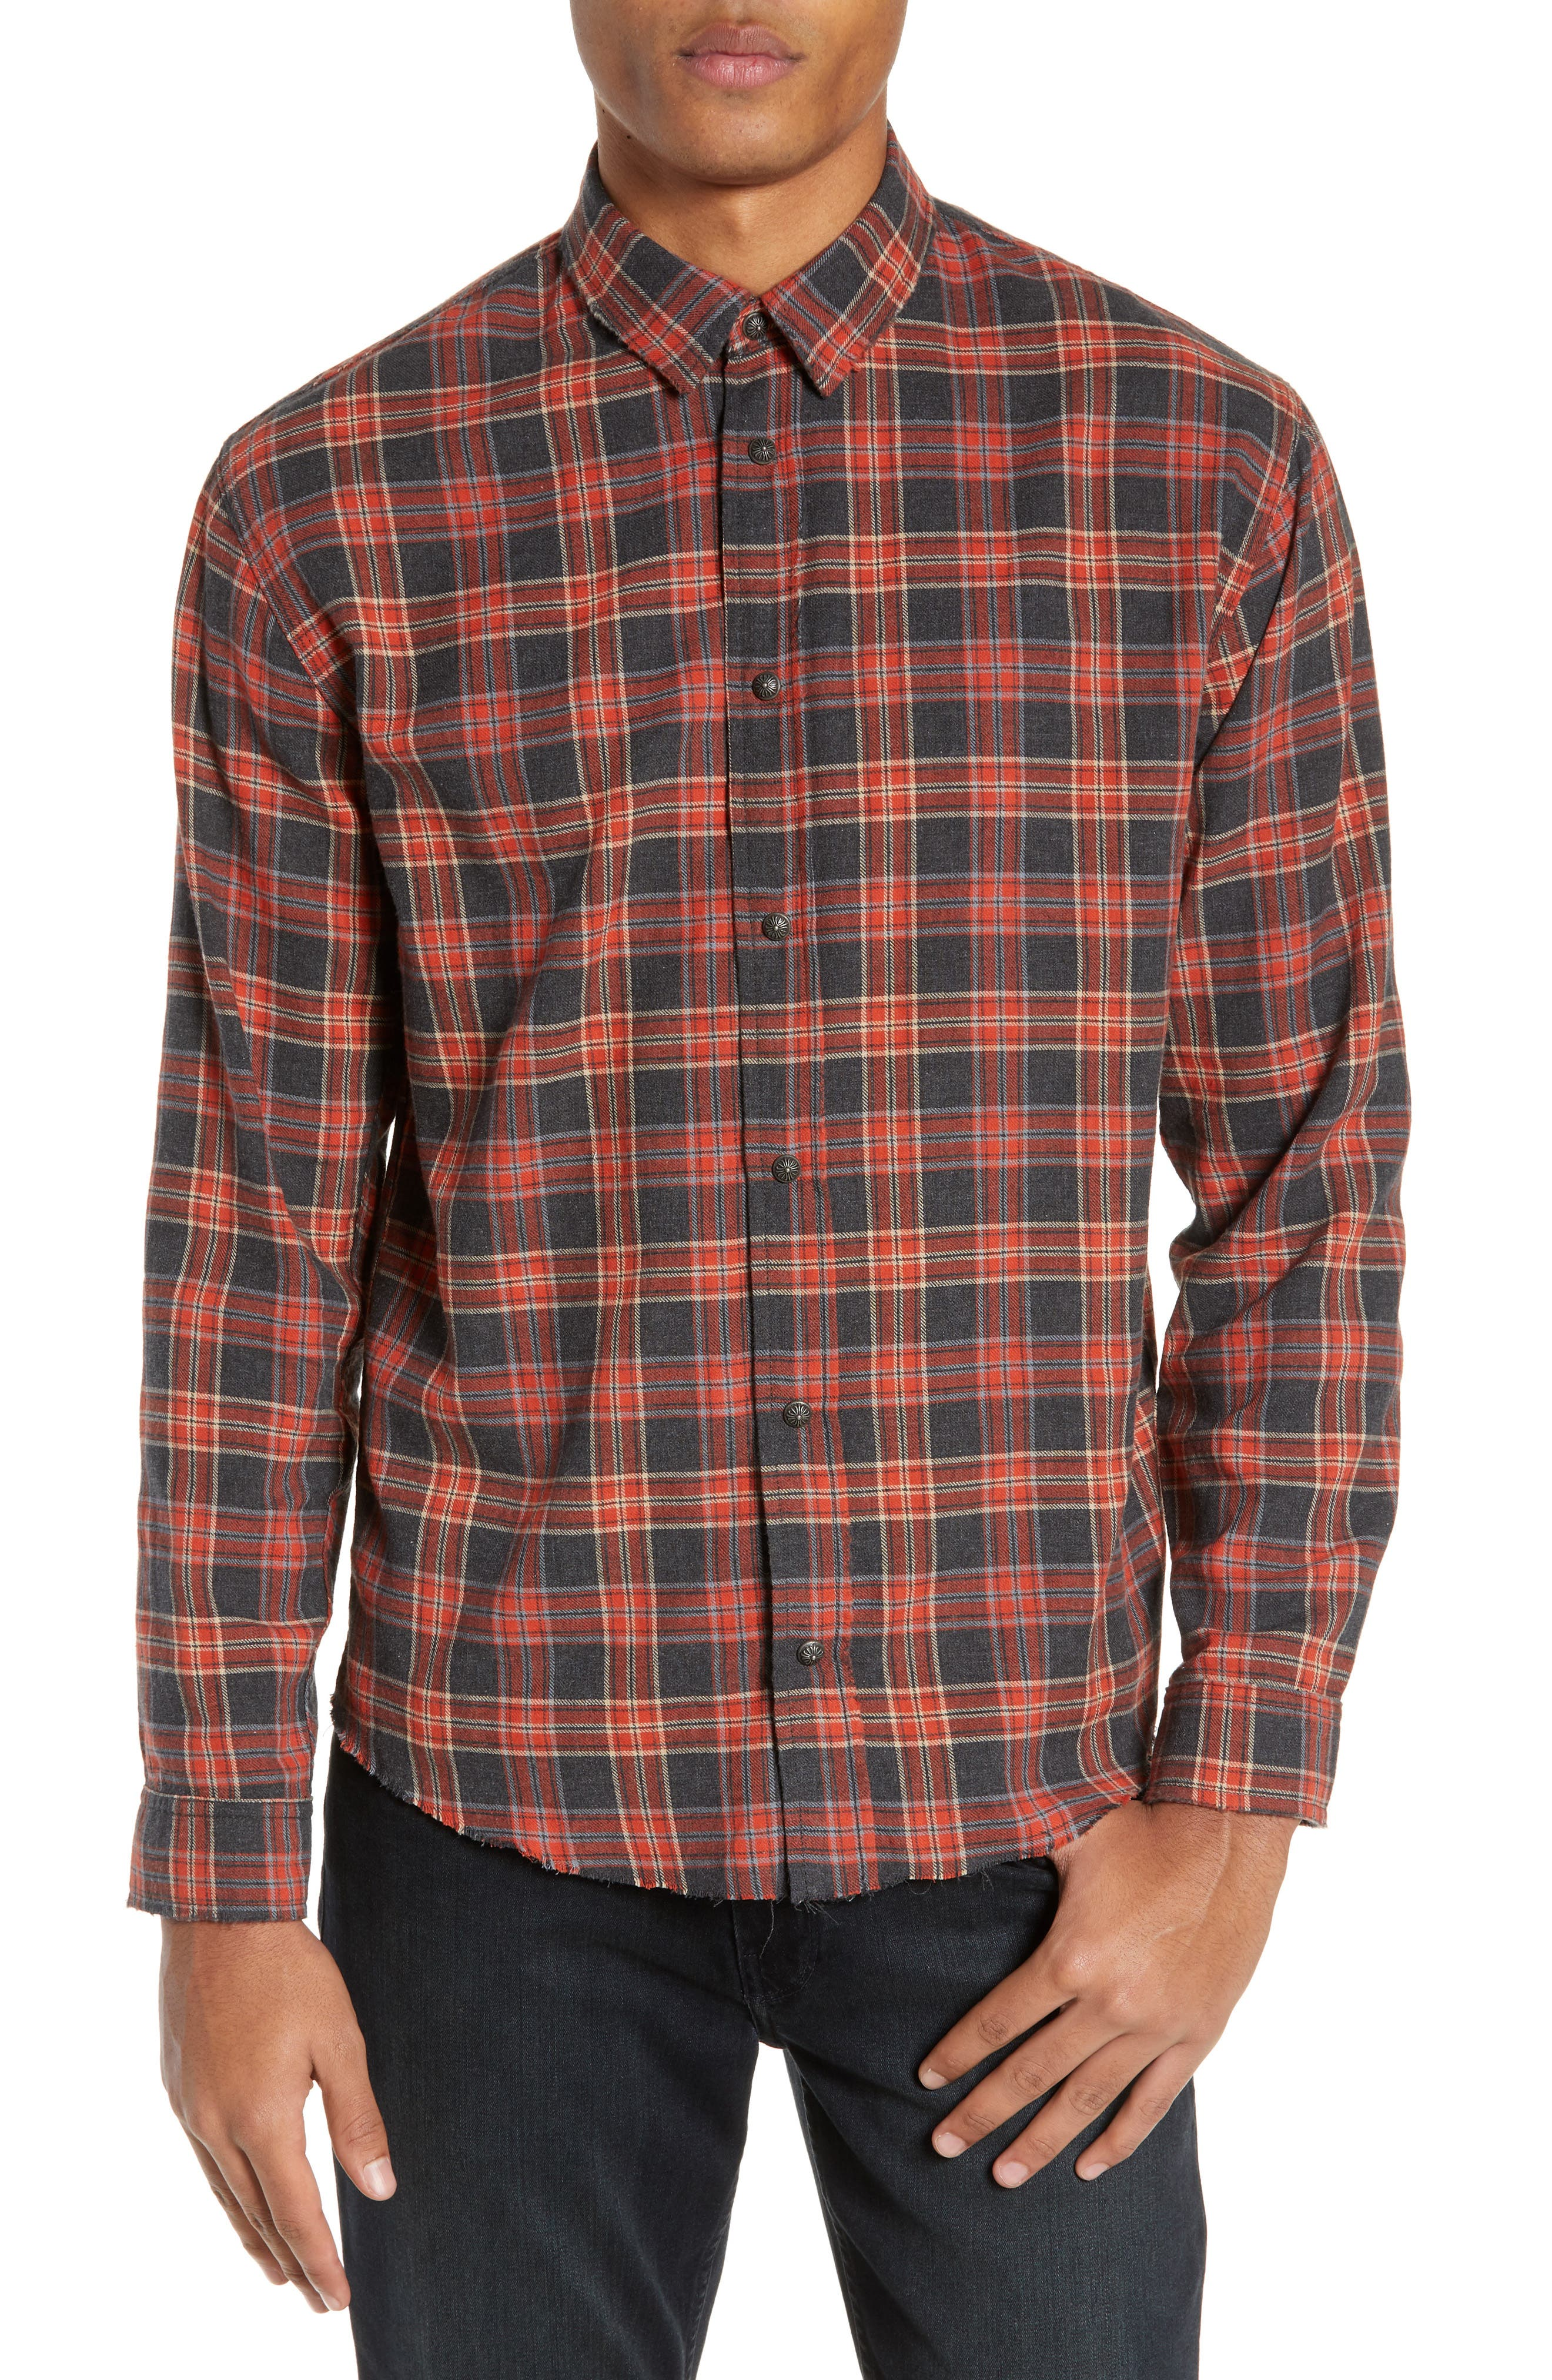 THE KOOPLES Plaid Regular Fit Flannel Shirt, Main, color, 800